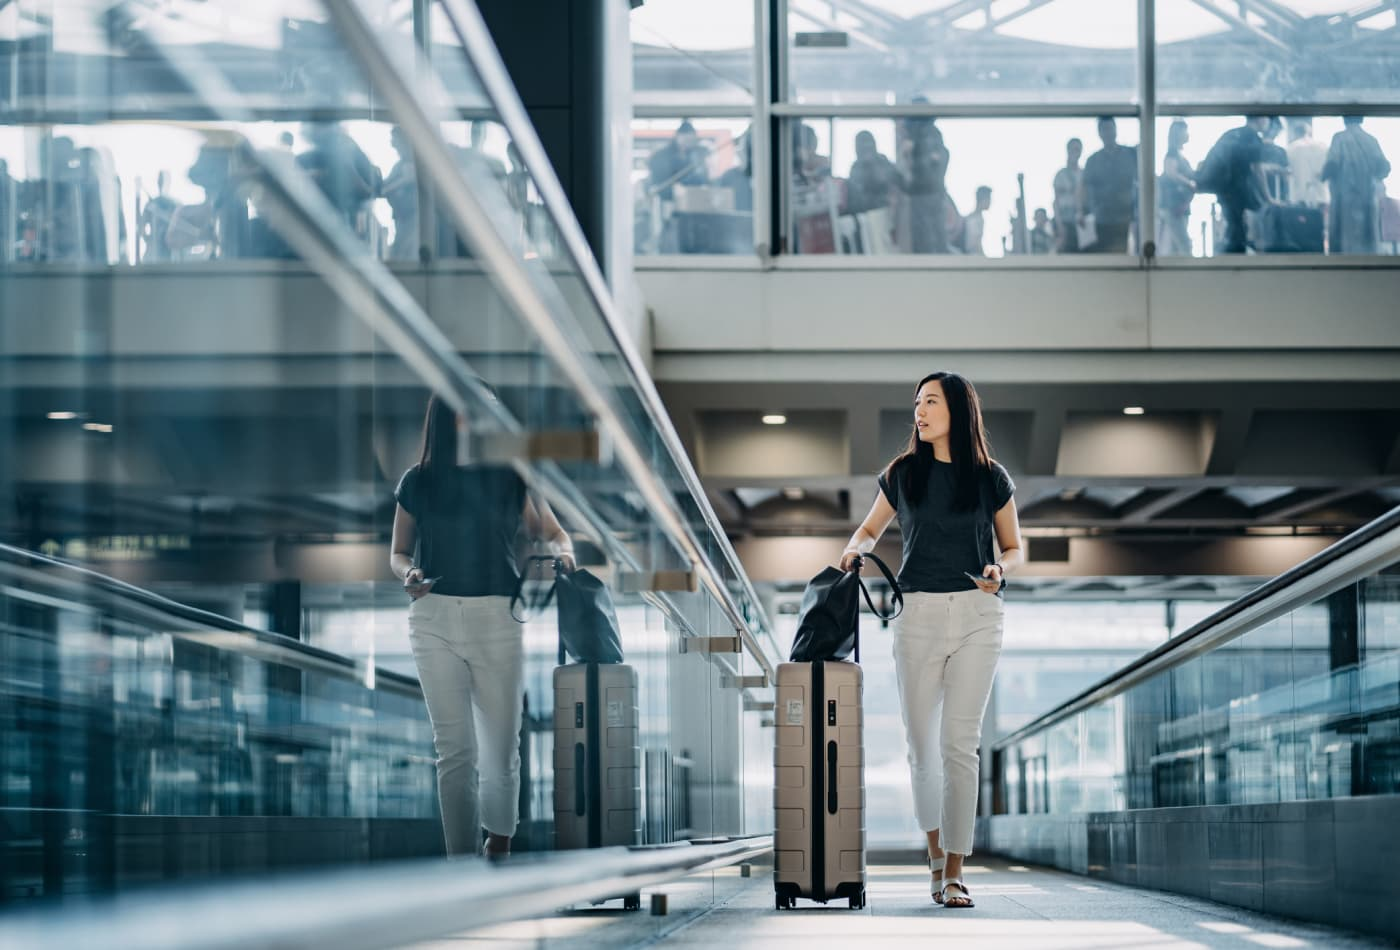 Five ways the pandemic may change airports for the better